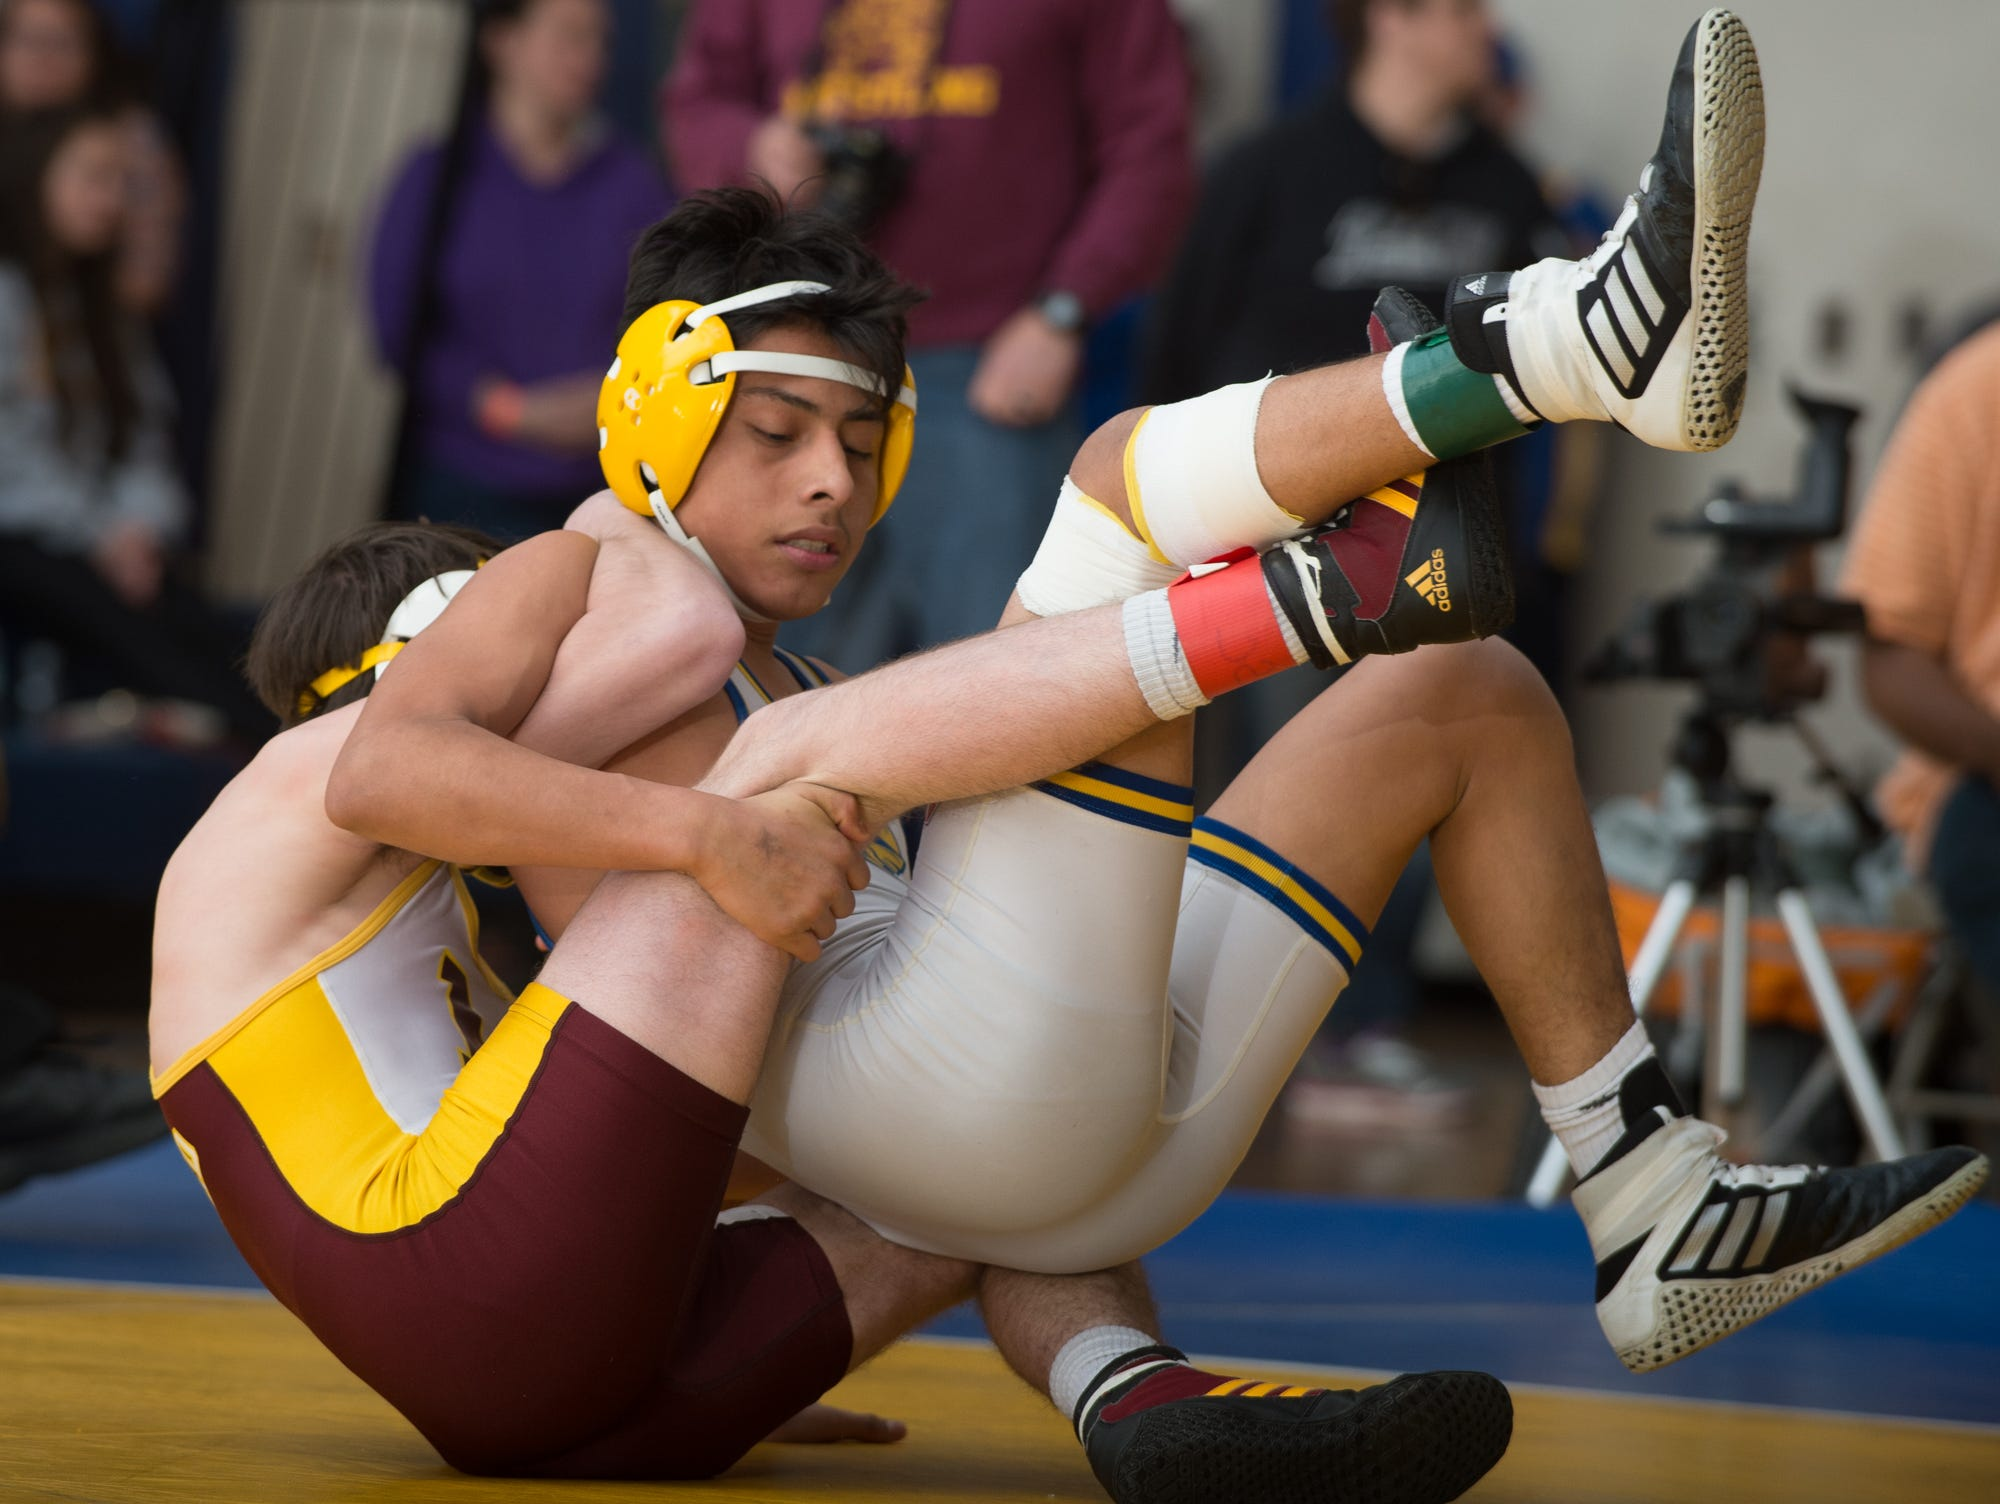 Milford's Robbie Rosser, left rolls over Sussex Central's Yony Morales in the 113 pound championship match at the Henlopen Conference wrestling tournament at Sussex Central High School.